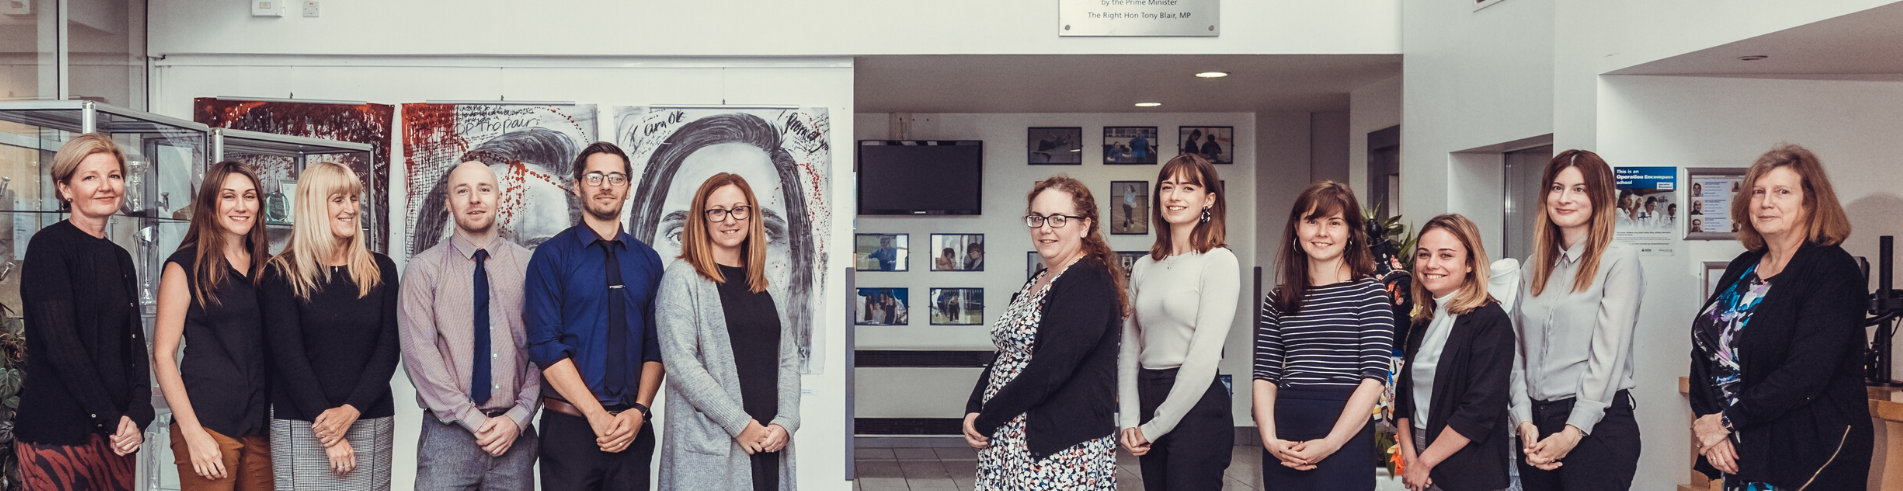 Meet the team at Gosforth Academy Sixth Form